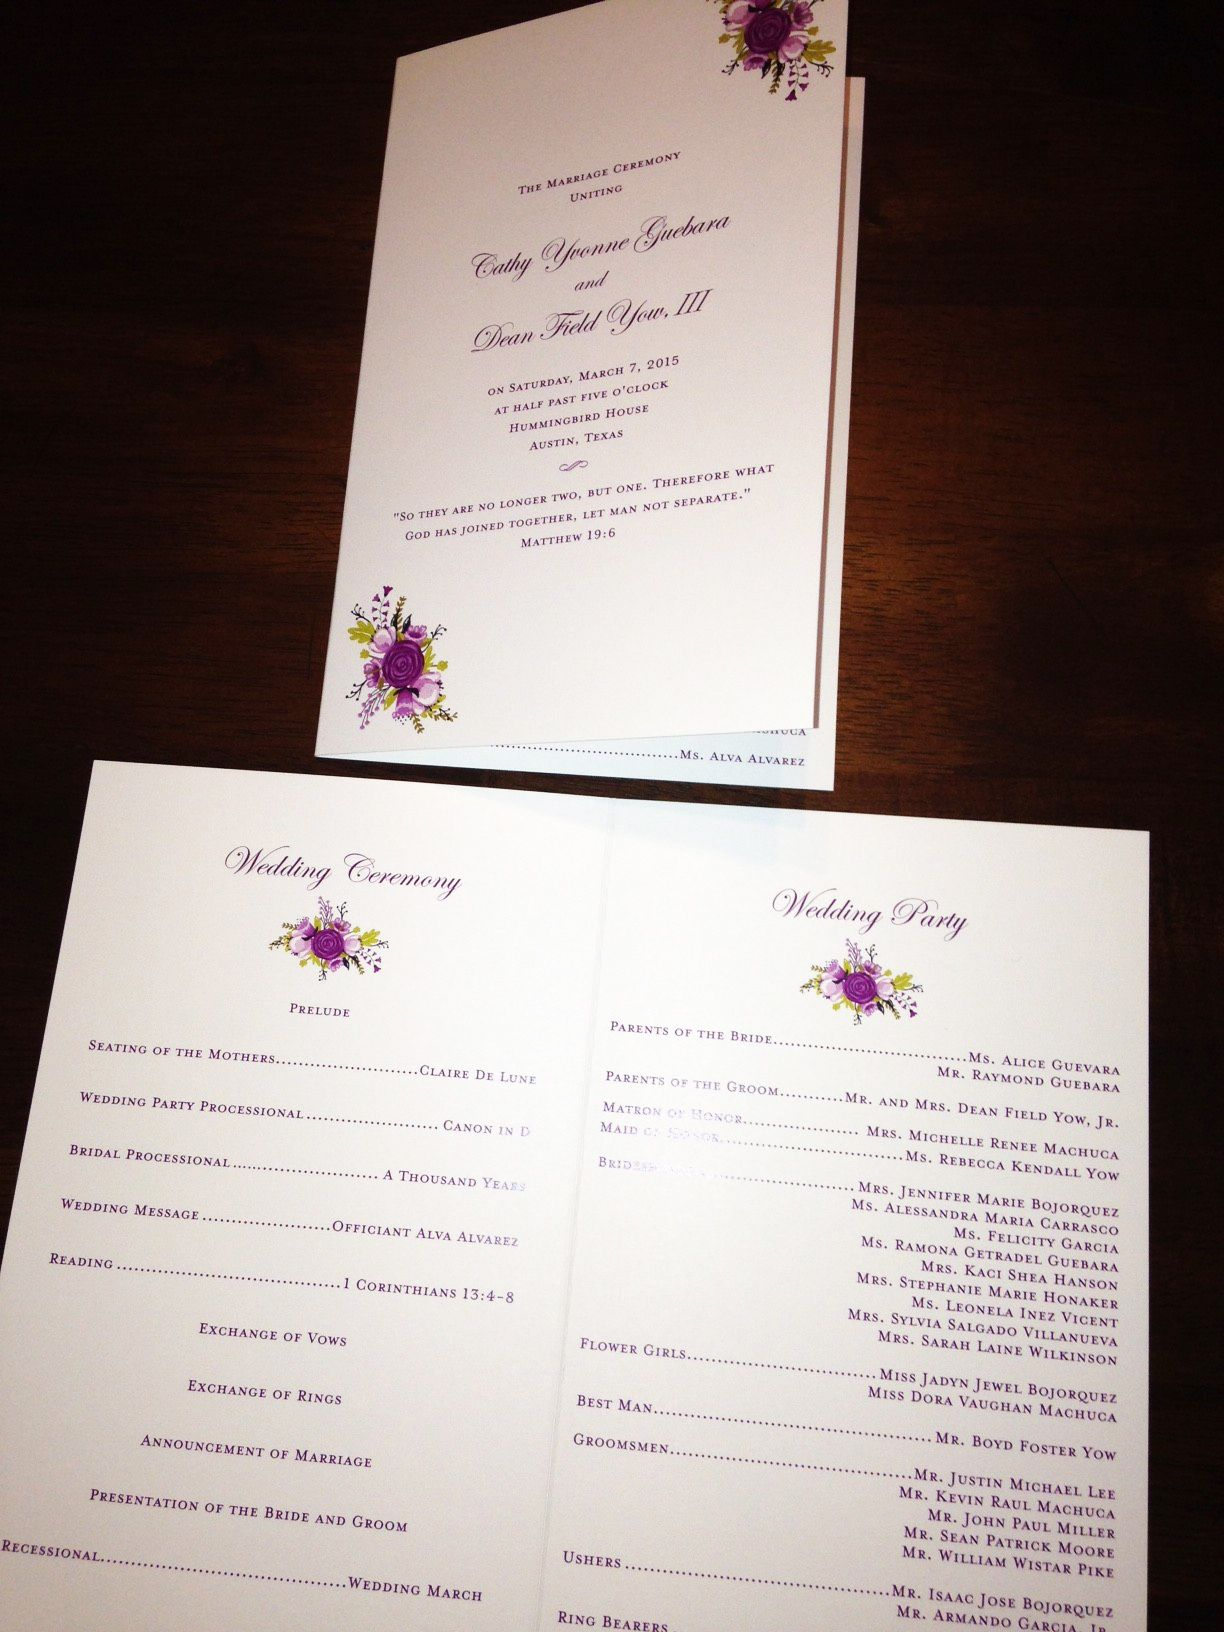 marriage invitation sms on mobile%0A Foldover program with custom floral illustration by The Inviting Pear